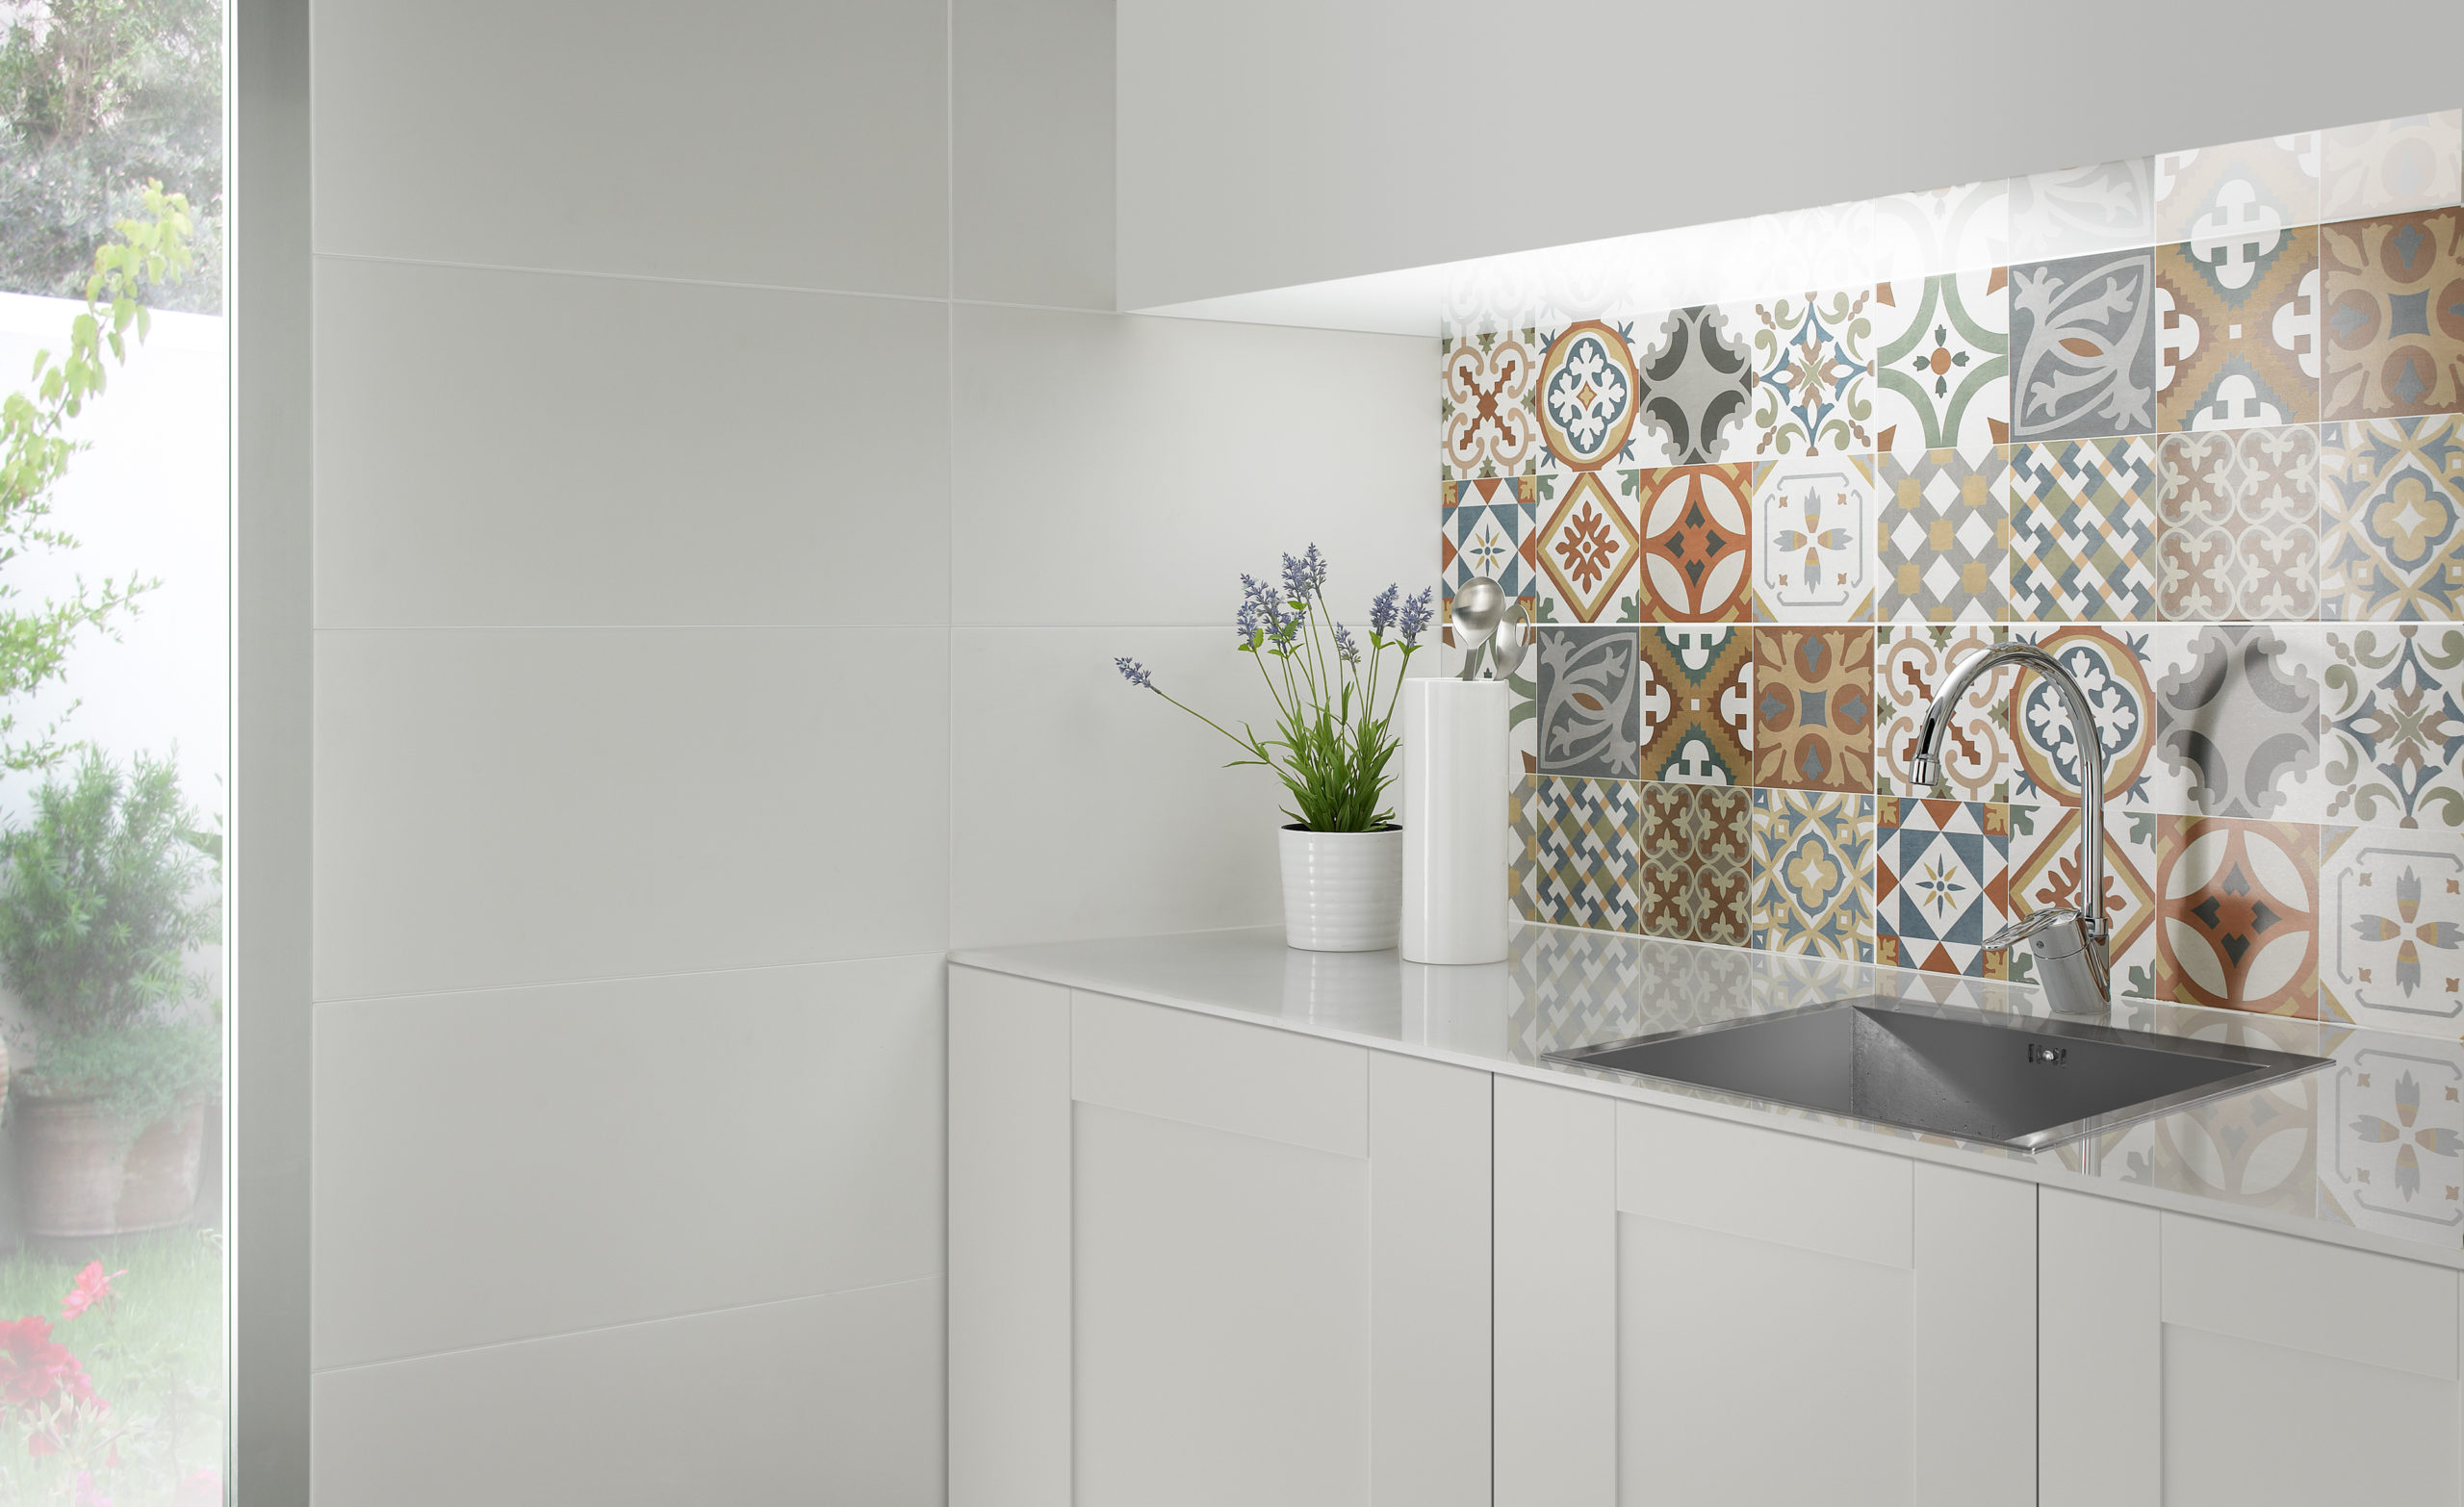 Tile trends in 2020 are big, bold and beautfiul